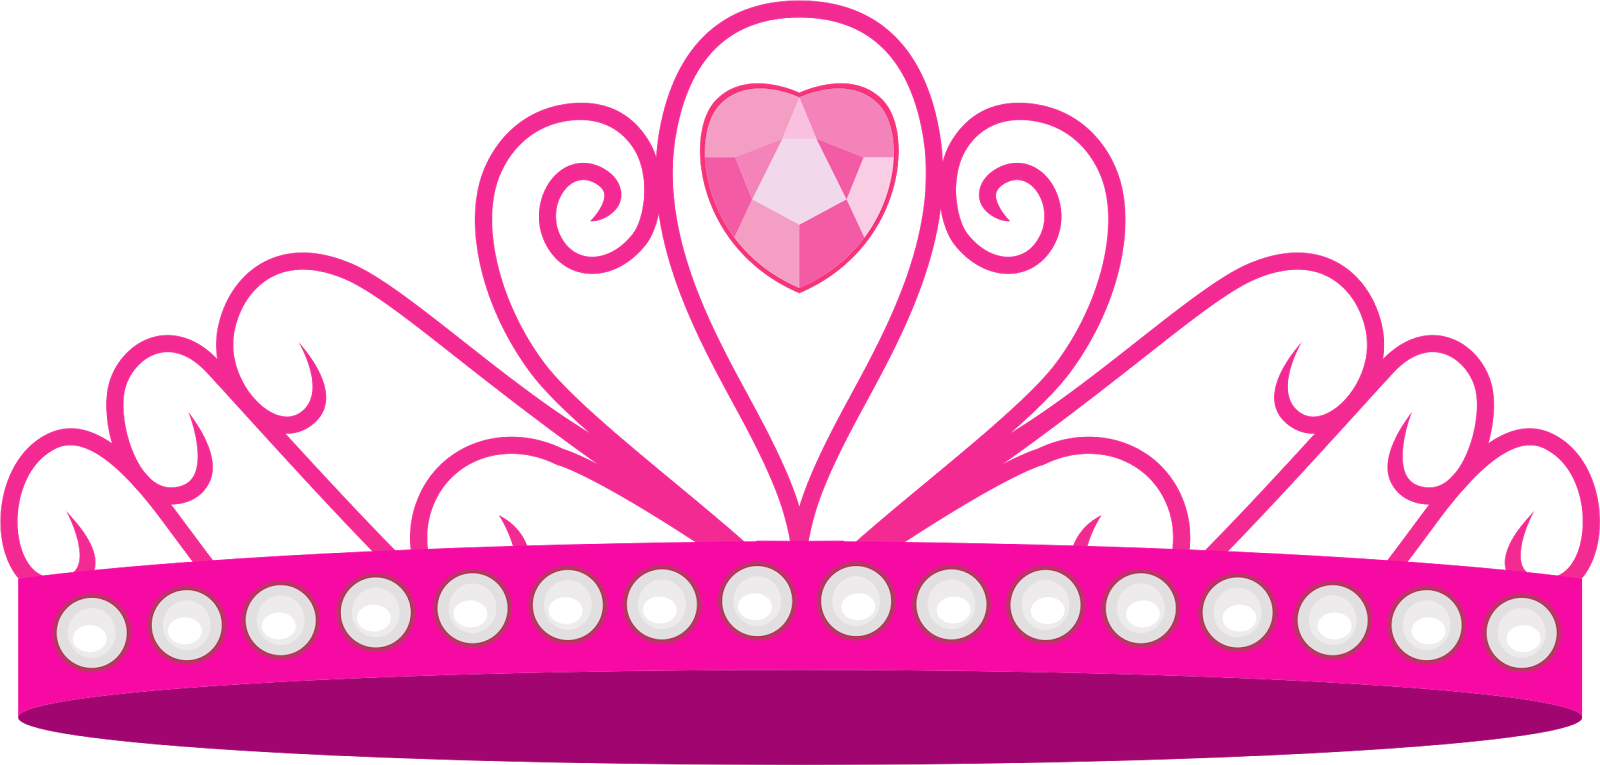 Crown with heart clipart picture royalty free download Artes, ideias, moldes, personalizados para festas. | Clip Art ... picture royalty free download